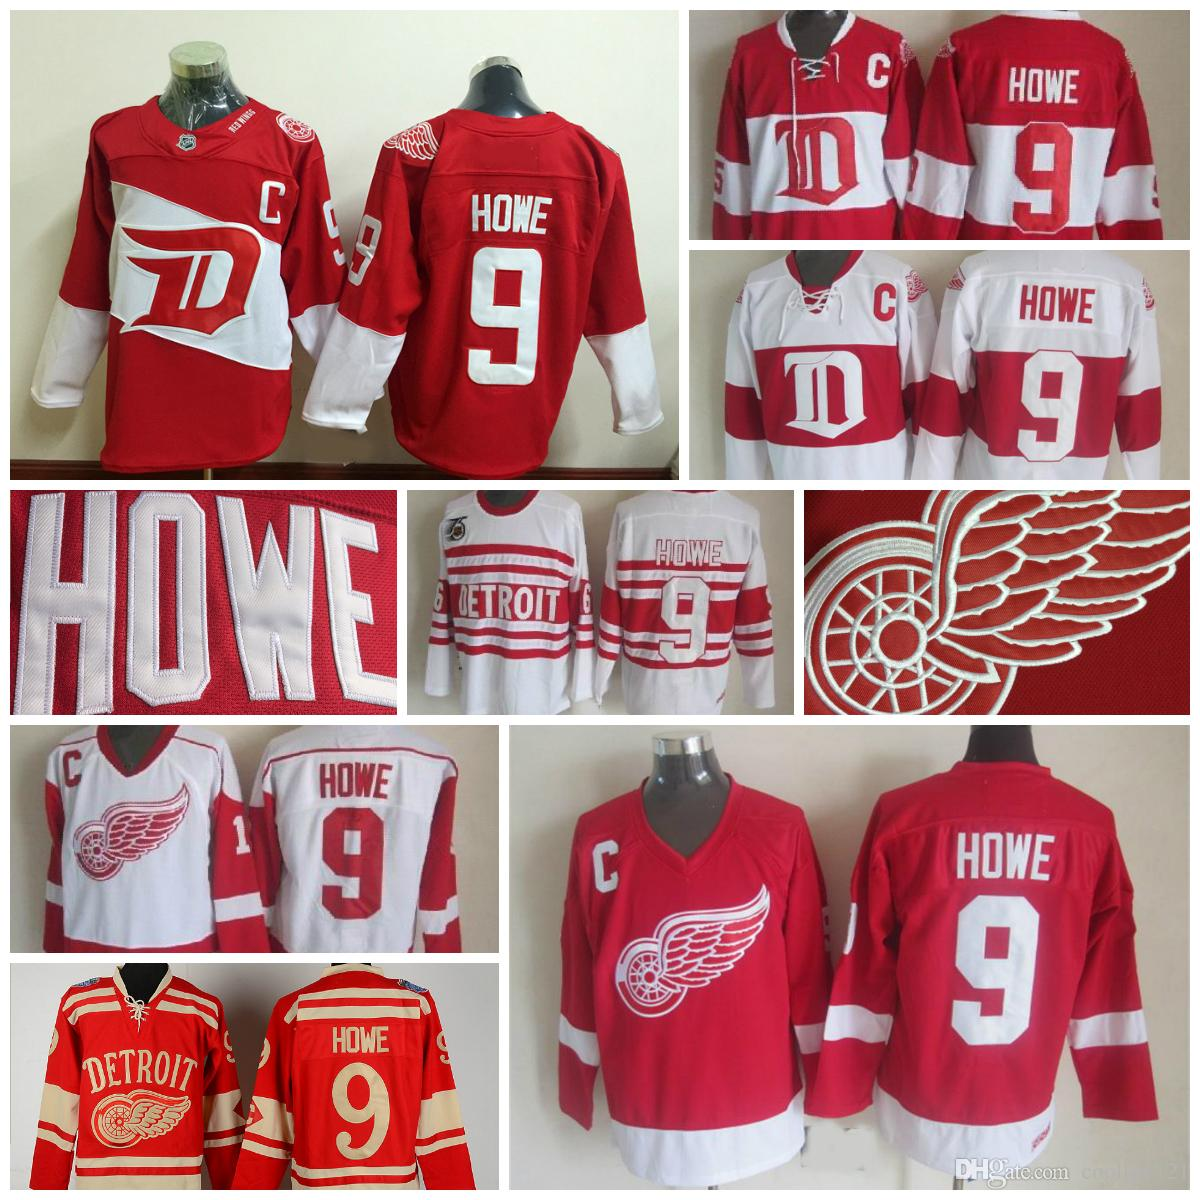 3d8c70eb8 ... Throwback Detroit Red Wings Jerseys 9 Gordie Howe Jerseys Home Red  Vintage Winter Classic Red White ...